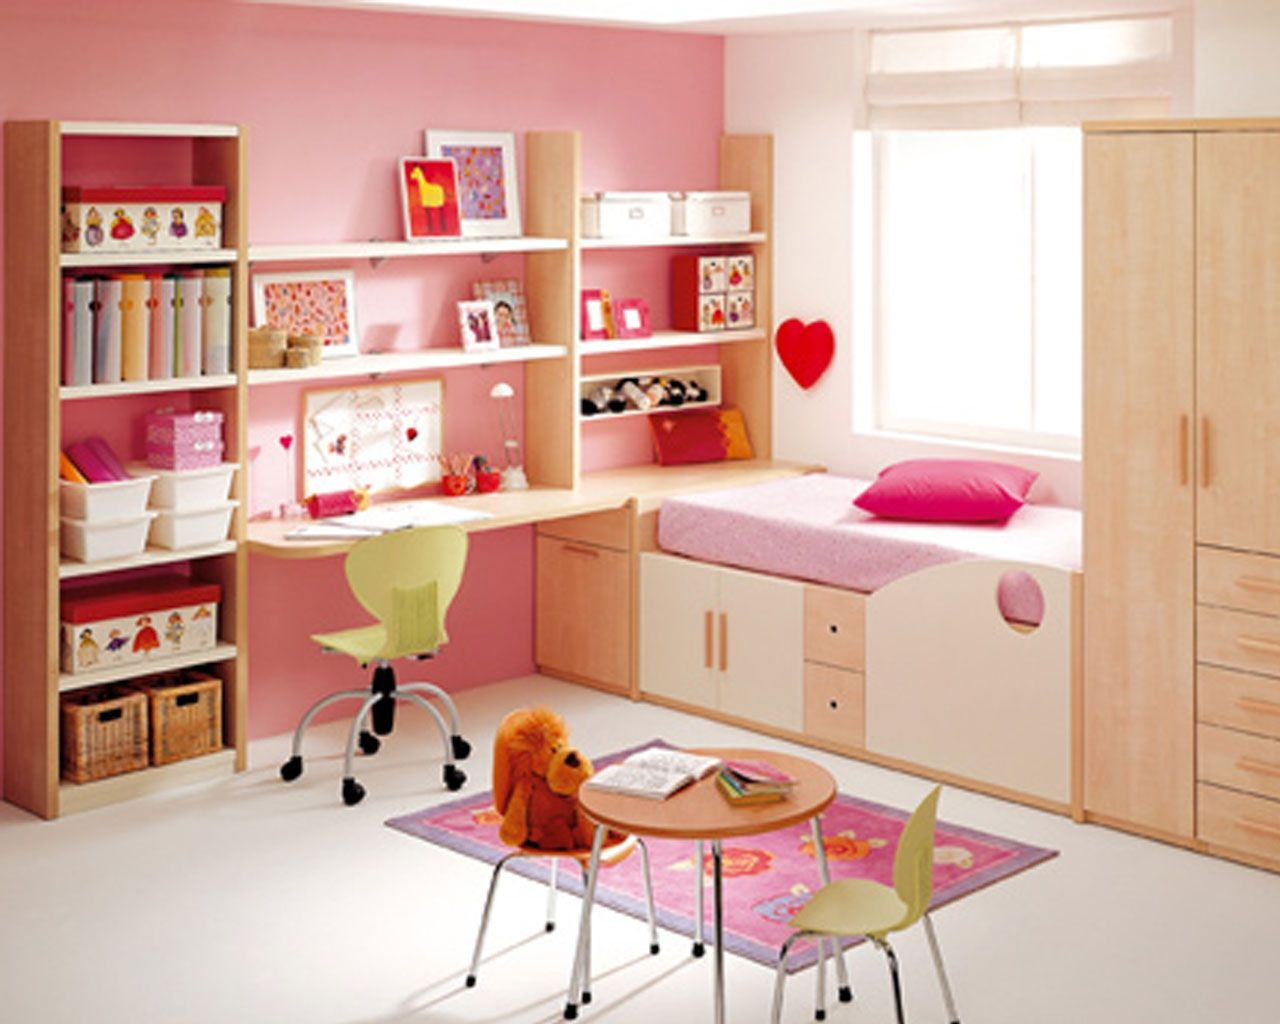 Fine Bedroom Sweet Decorating Ideas For Girls Bedroom With One Study Largest Home Design Picture Inspirations Pitcheantrous